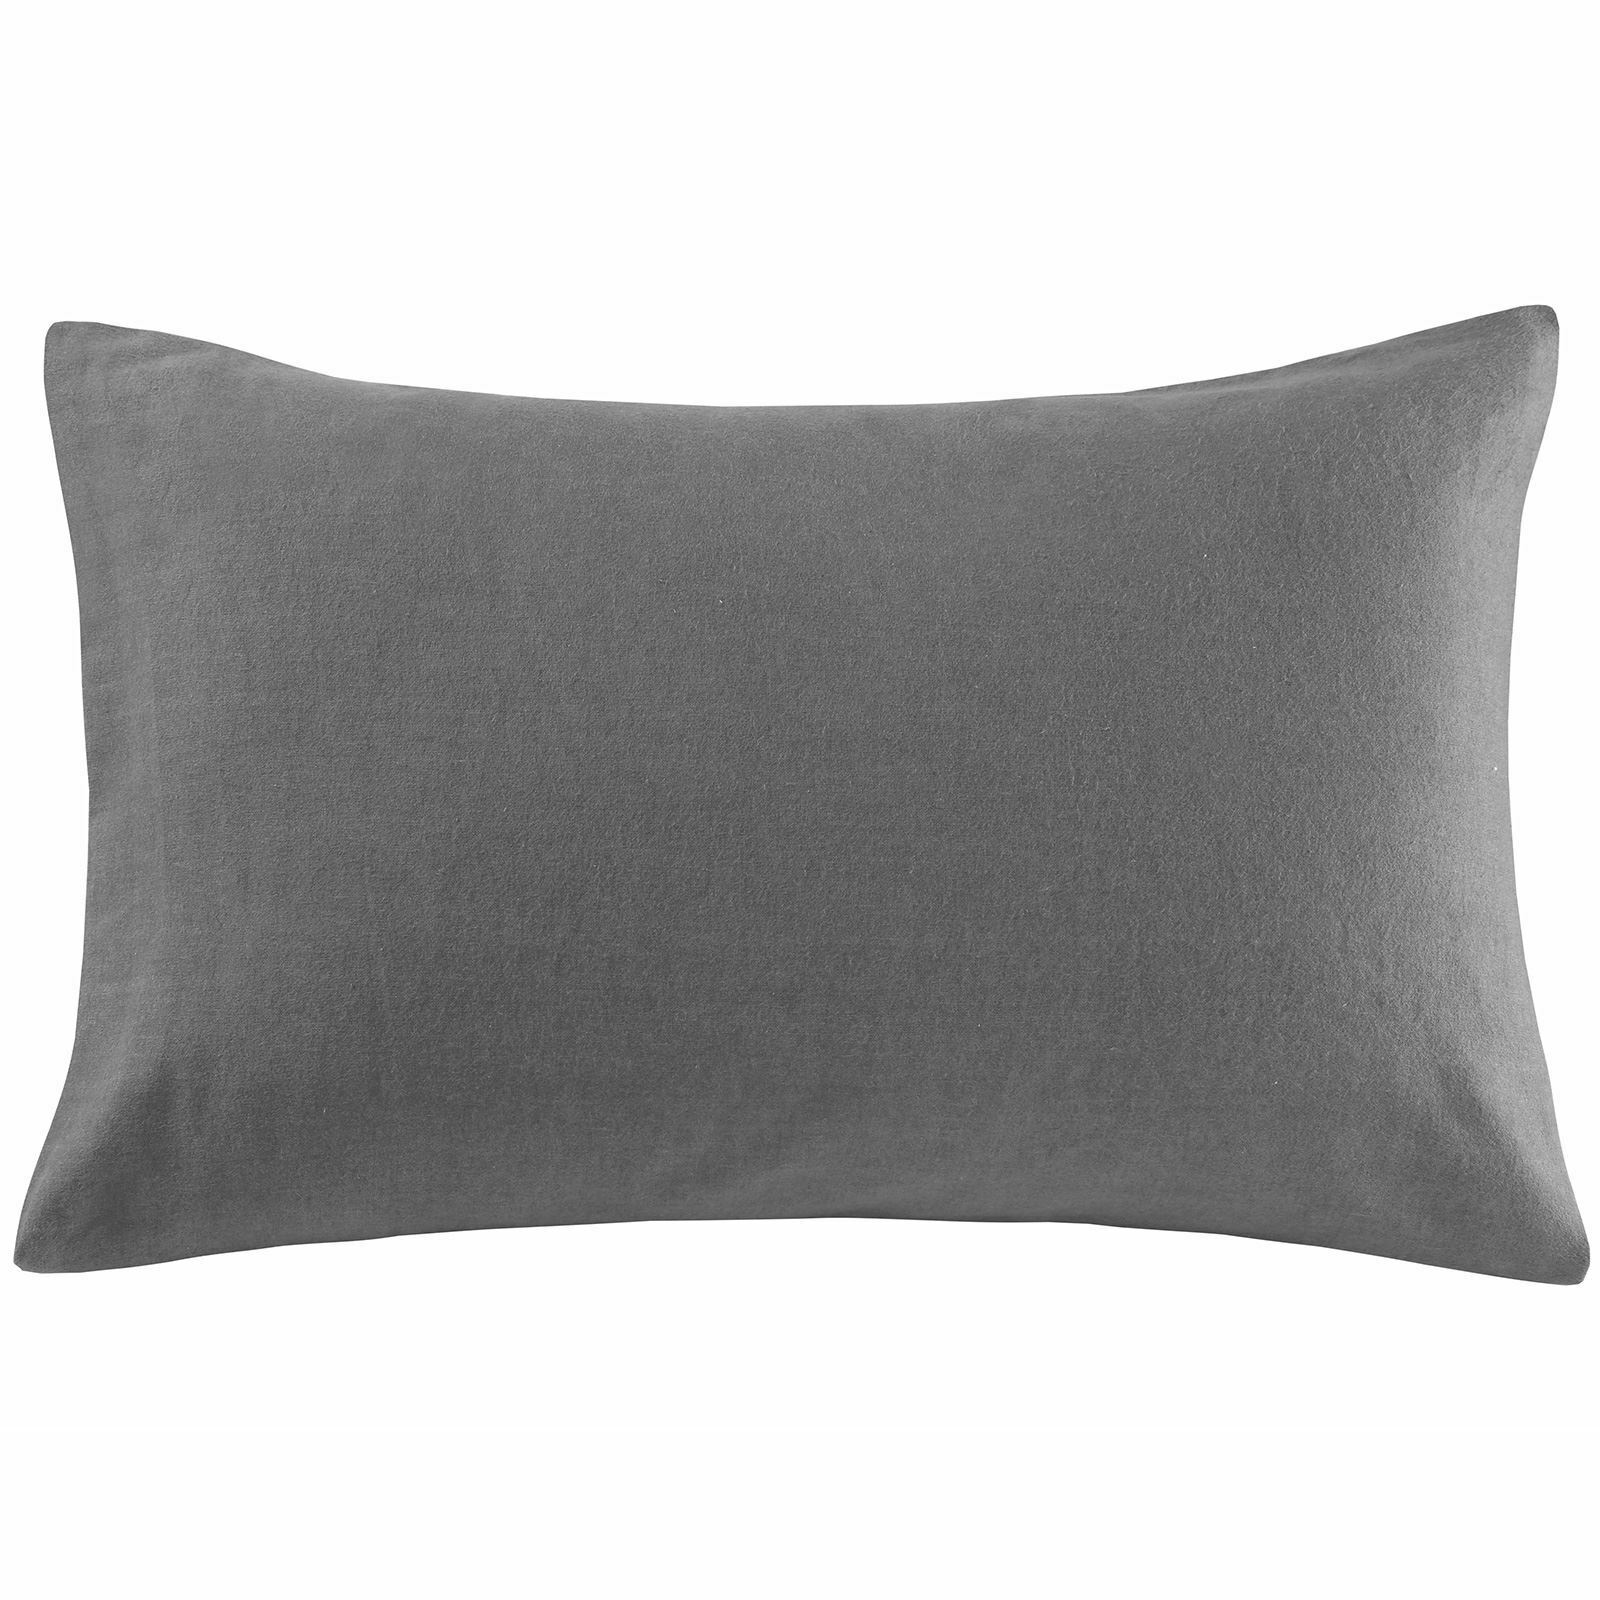 100/% Brushed Cotton Flannel Housewife /& Oxford Pillowcases Thermal Pillow Covers